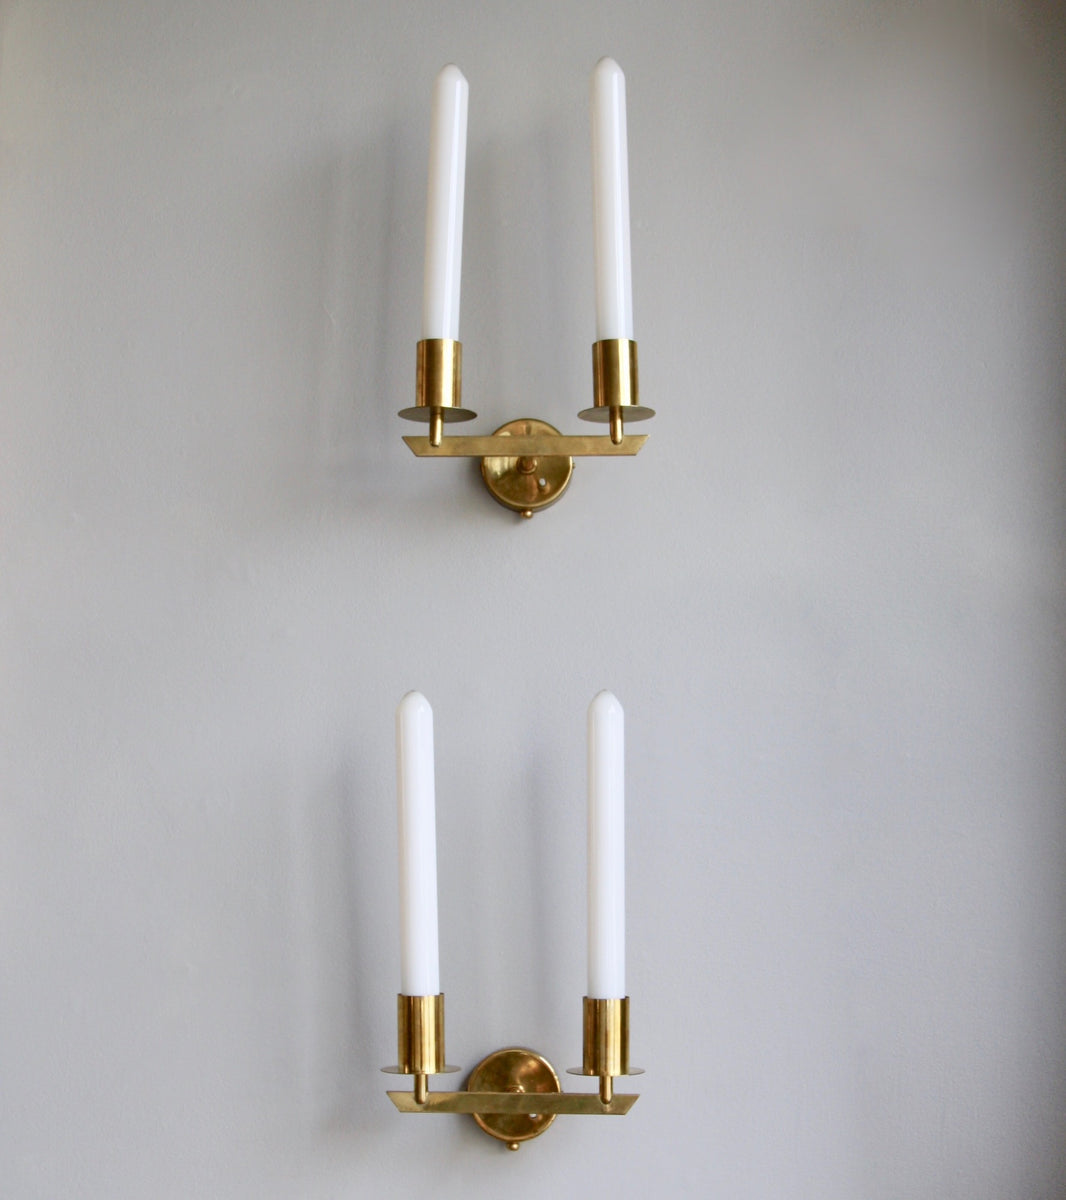 Pair of Brass Wall Sconces Itsu, Finland, C. 1950 - Image 2